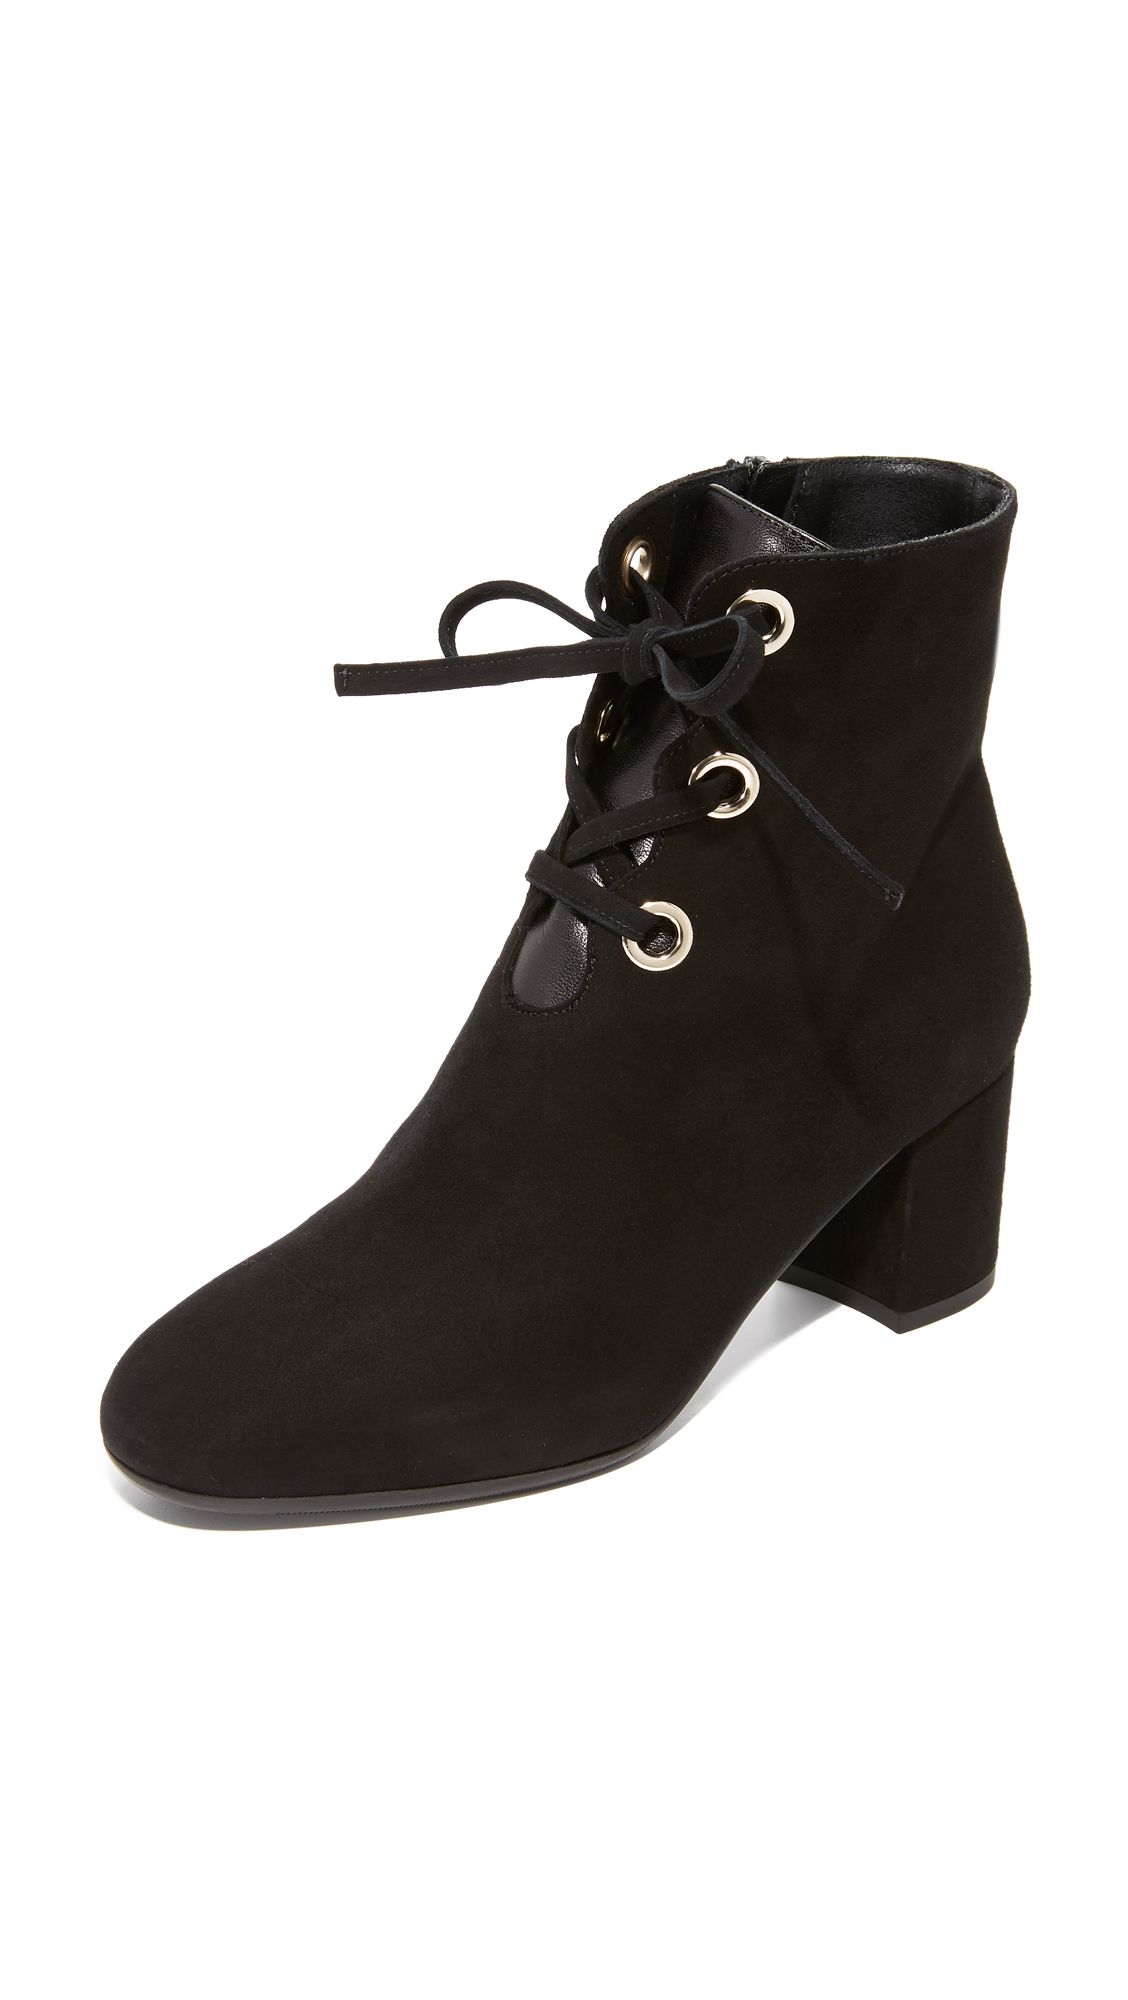 L.K. Bennett Mollie Booties - Black